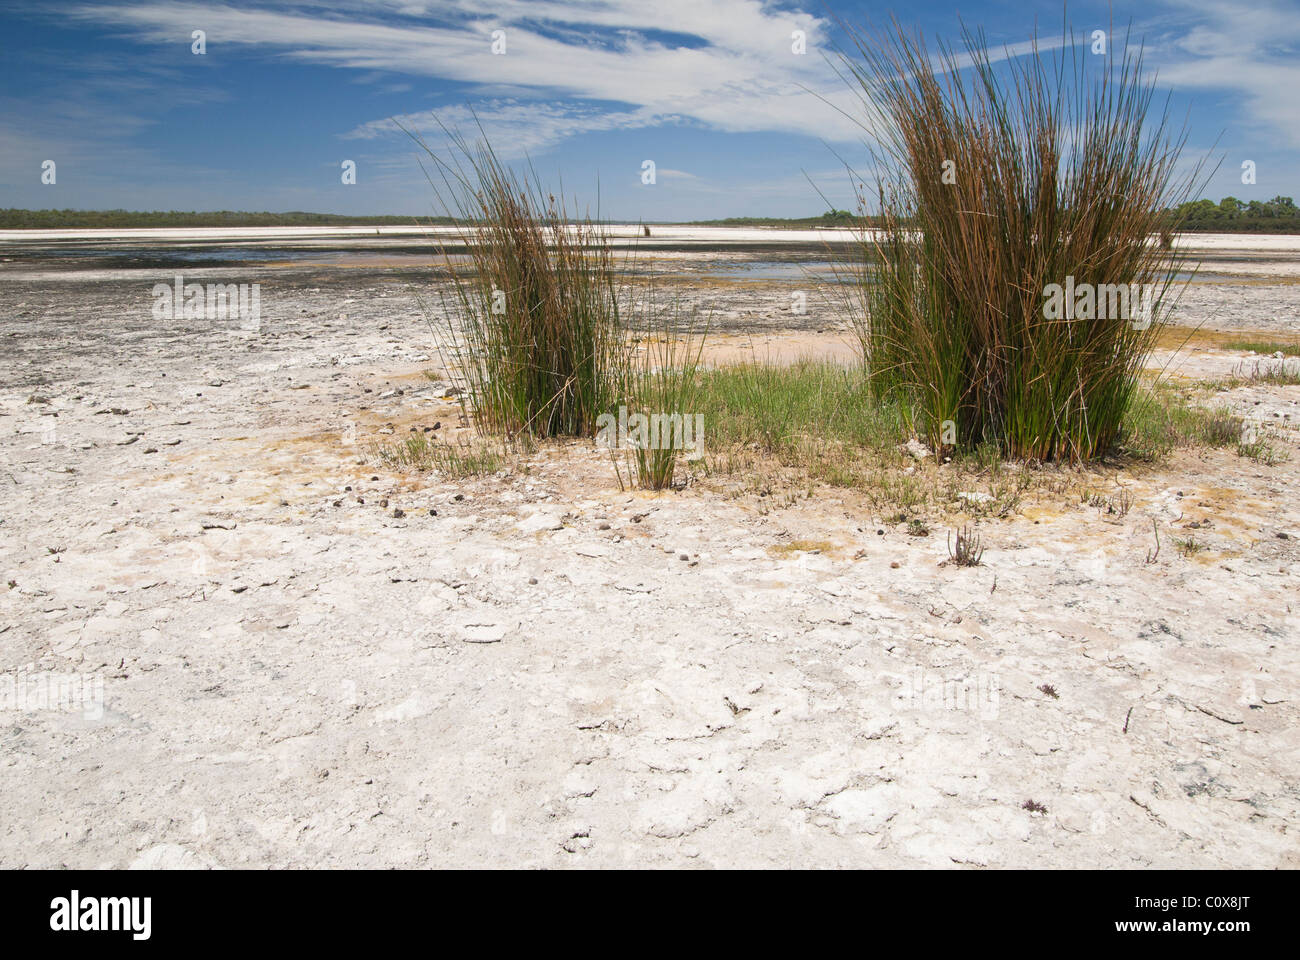 Salt tolerant grass growing from the dry lake bed of Lake Preston in Western Australia Stock Photo